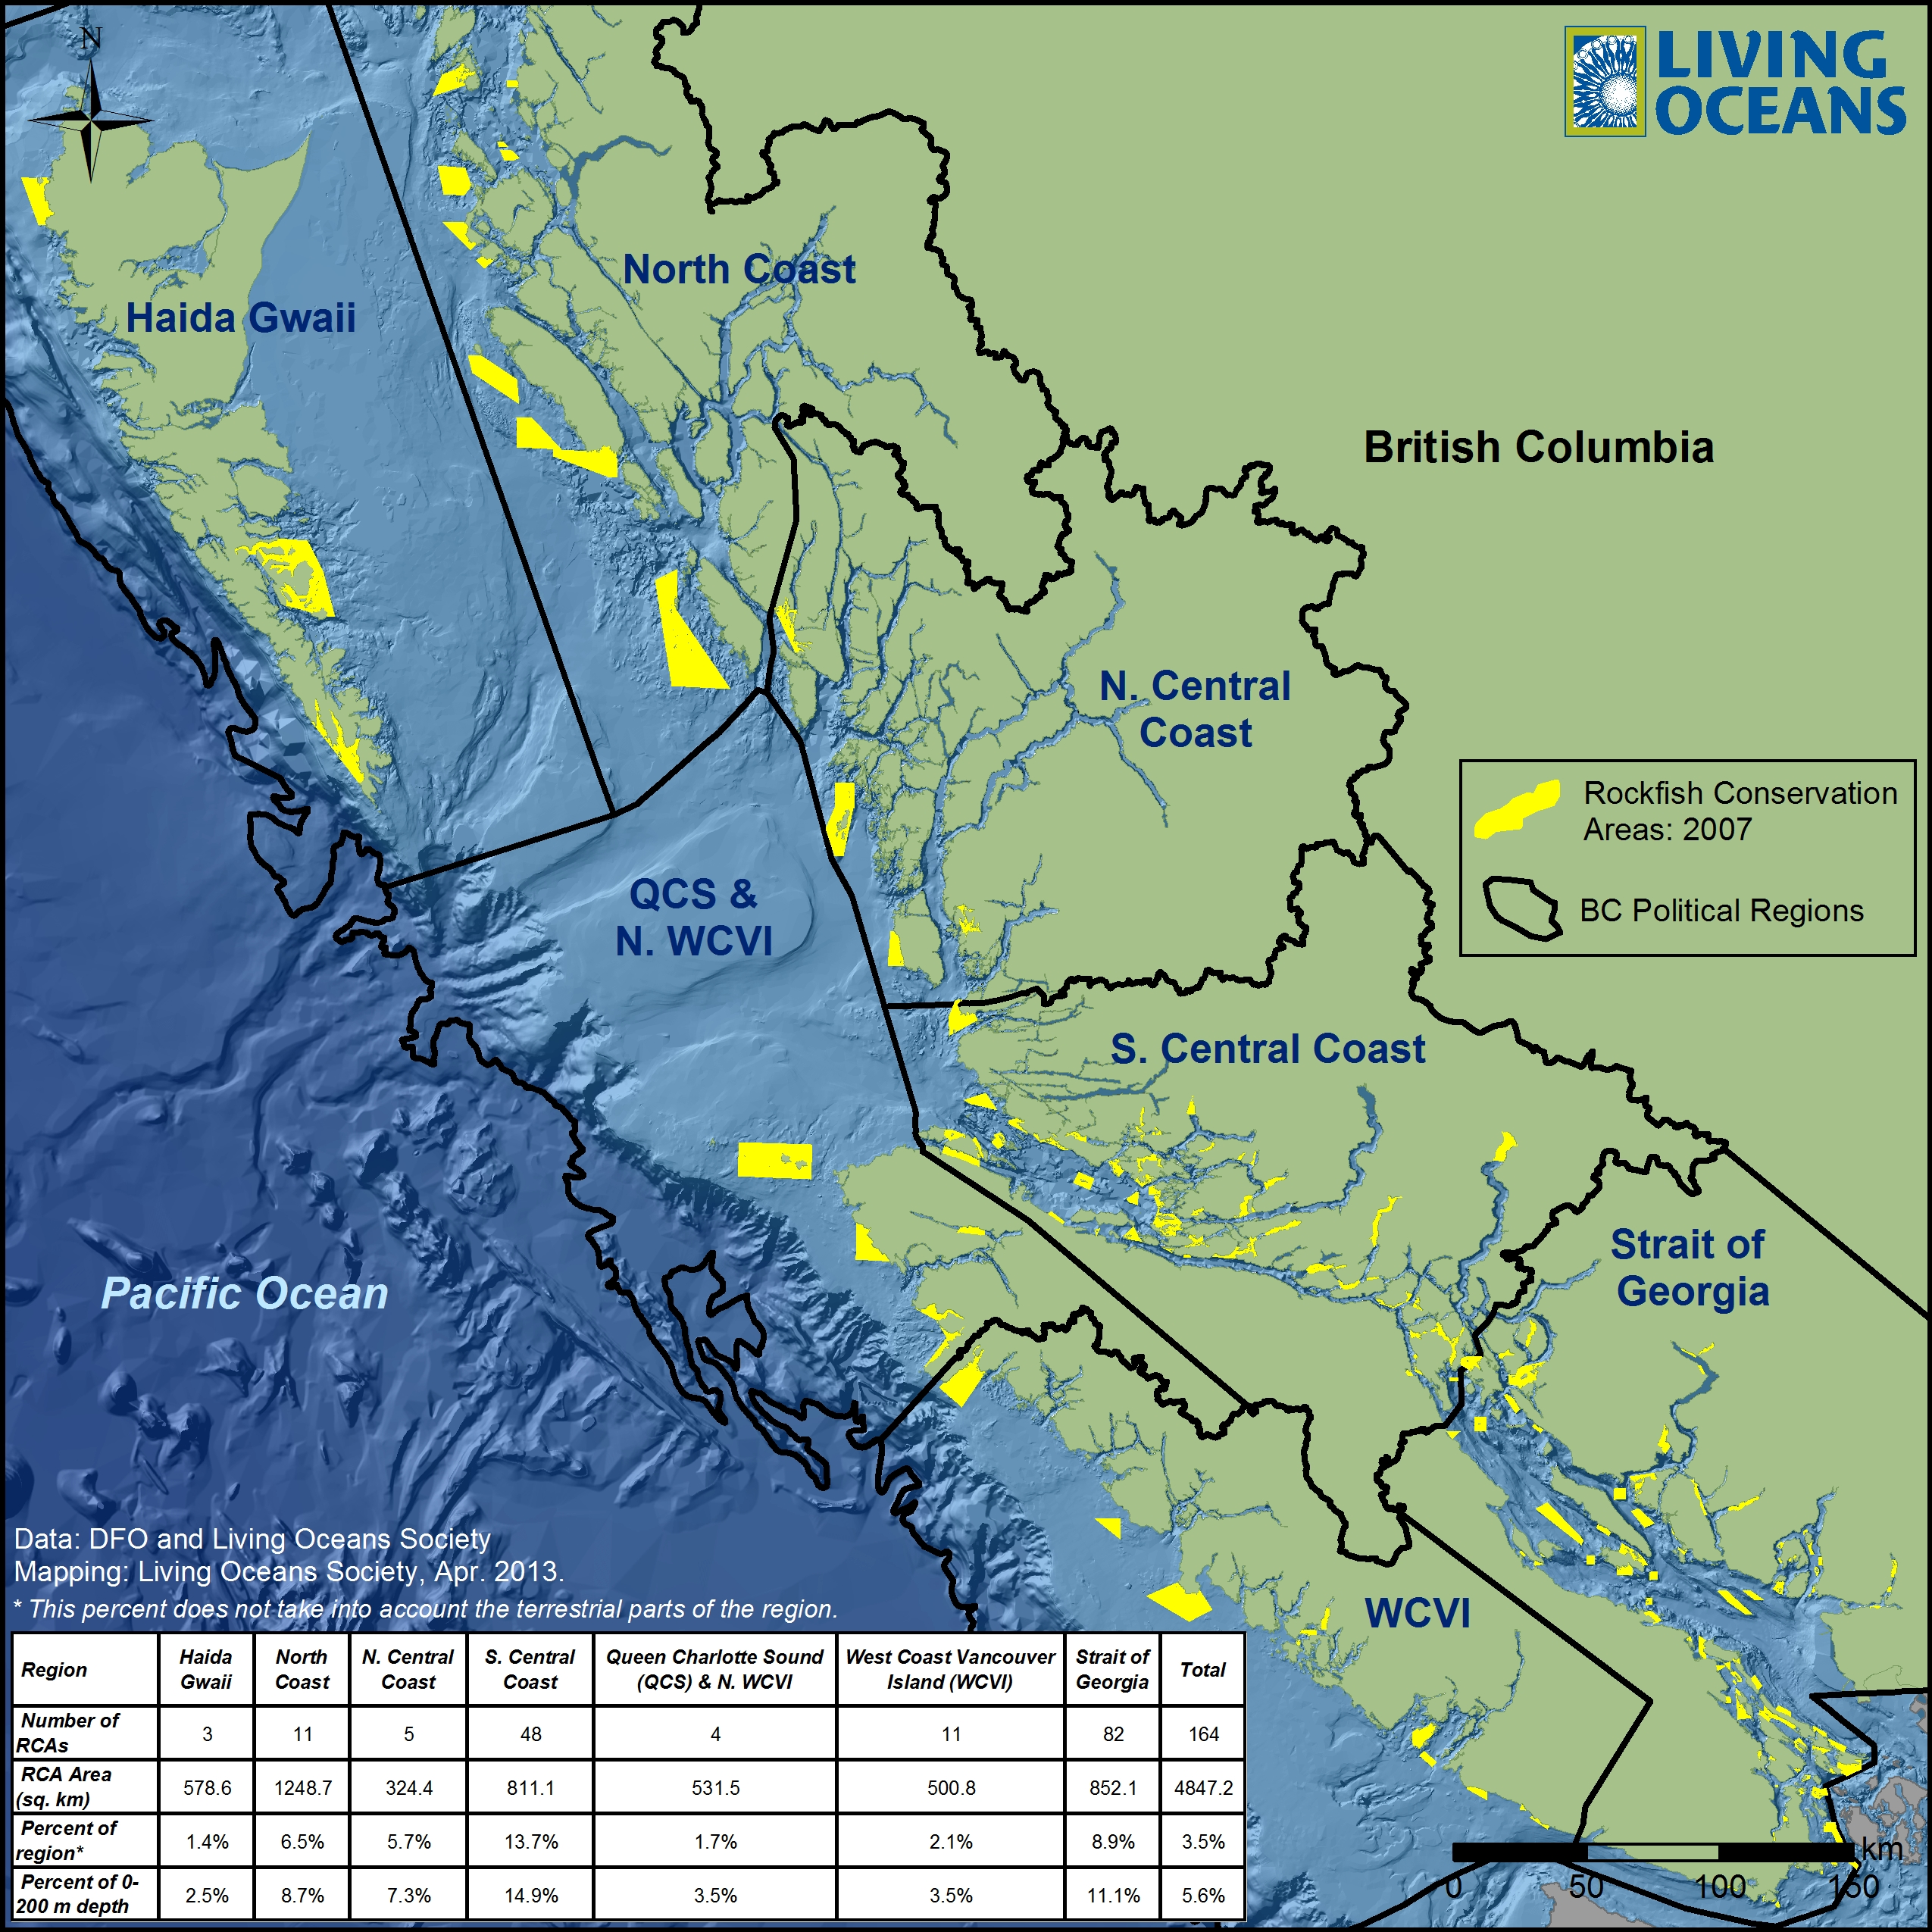 Rockfish Conservation Areas By Bc Regions Living Oceans